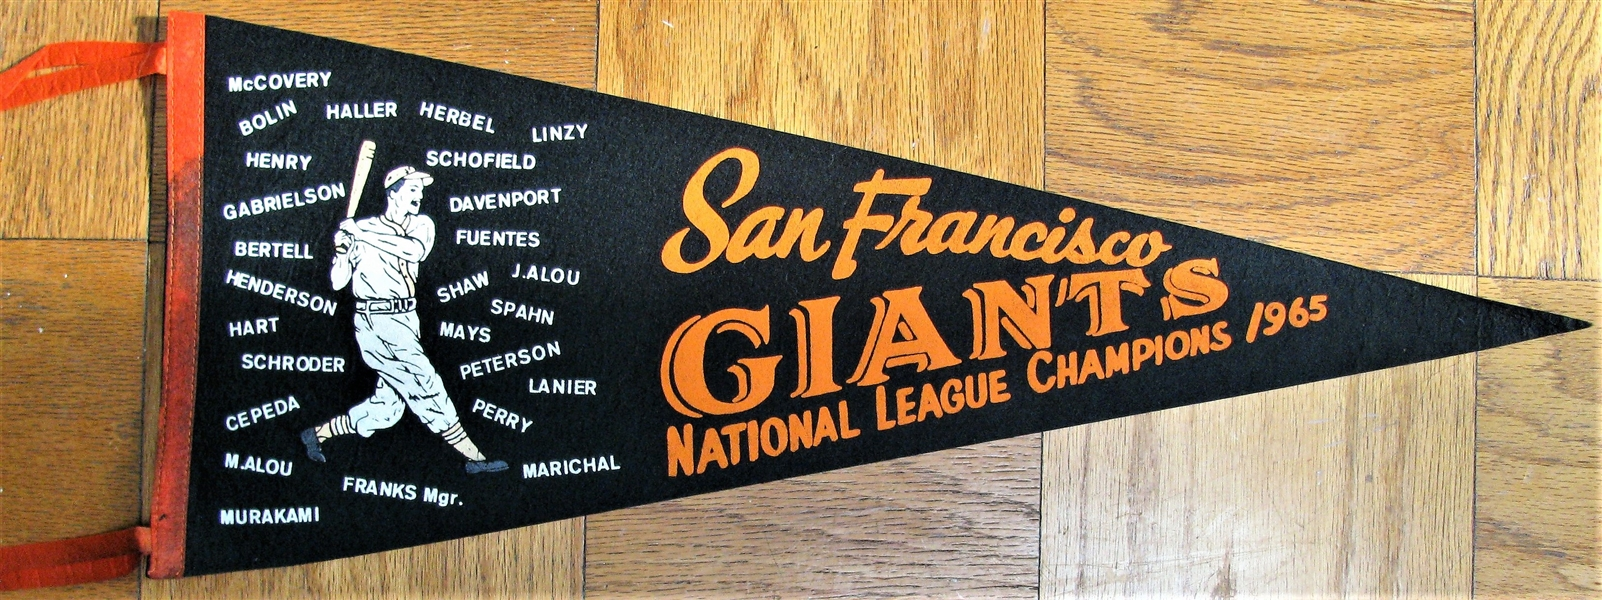 1965 SAN FRANCISCO GIANTS NL CHAMPIONS PHANTOM PENNANT